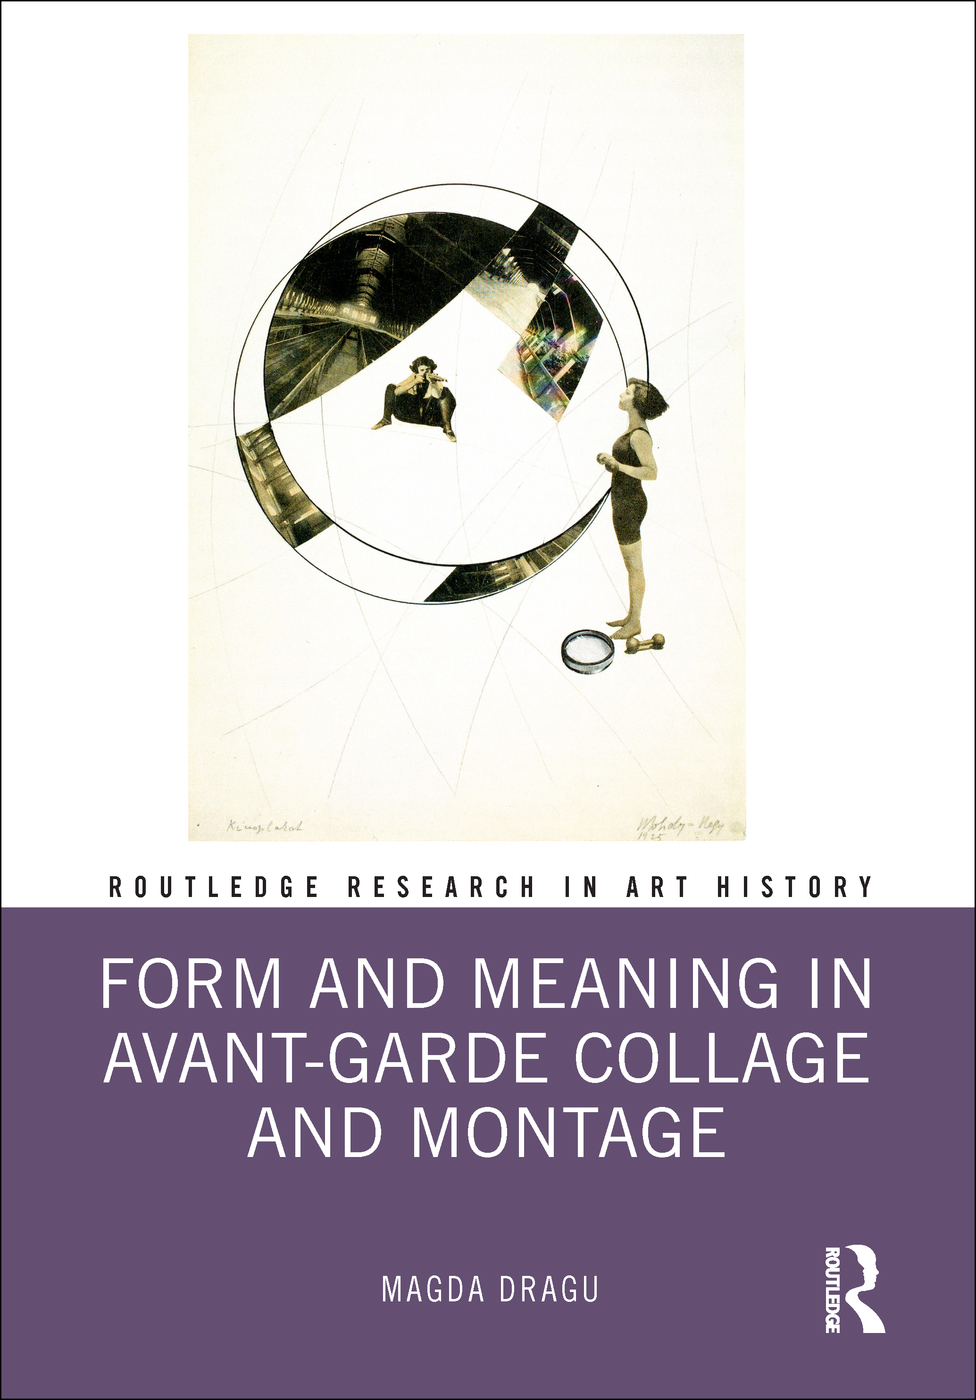 Form and Meaning in Avant-Garde Collage and Montage book cover